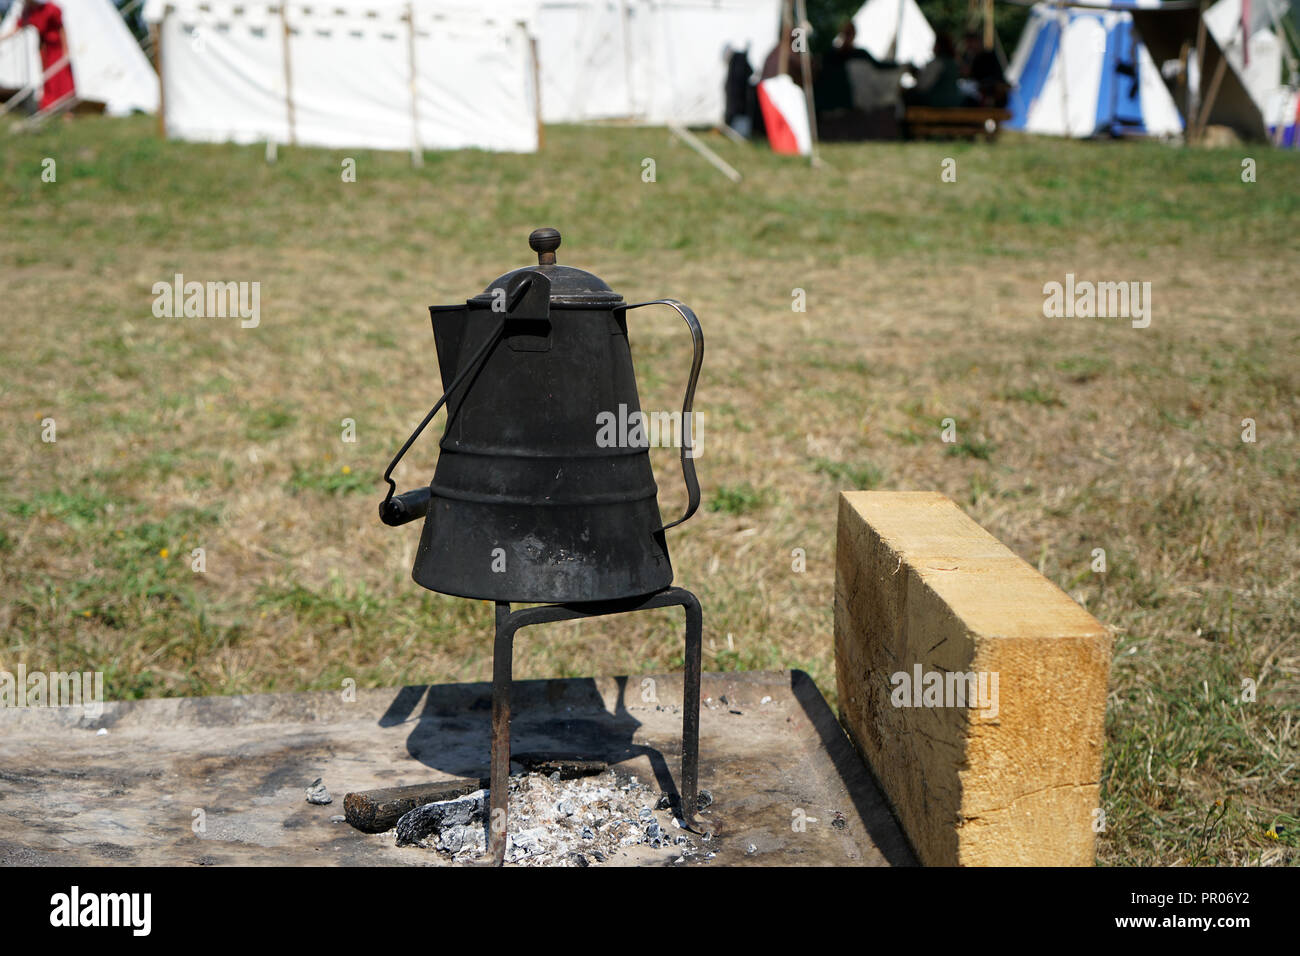 Primitive cooking on open flame with old pots and pans in Germany on a feast - Stock Image